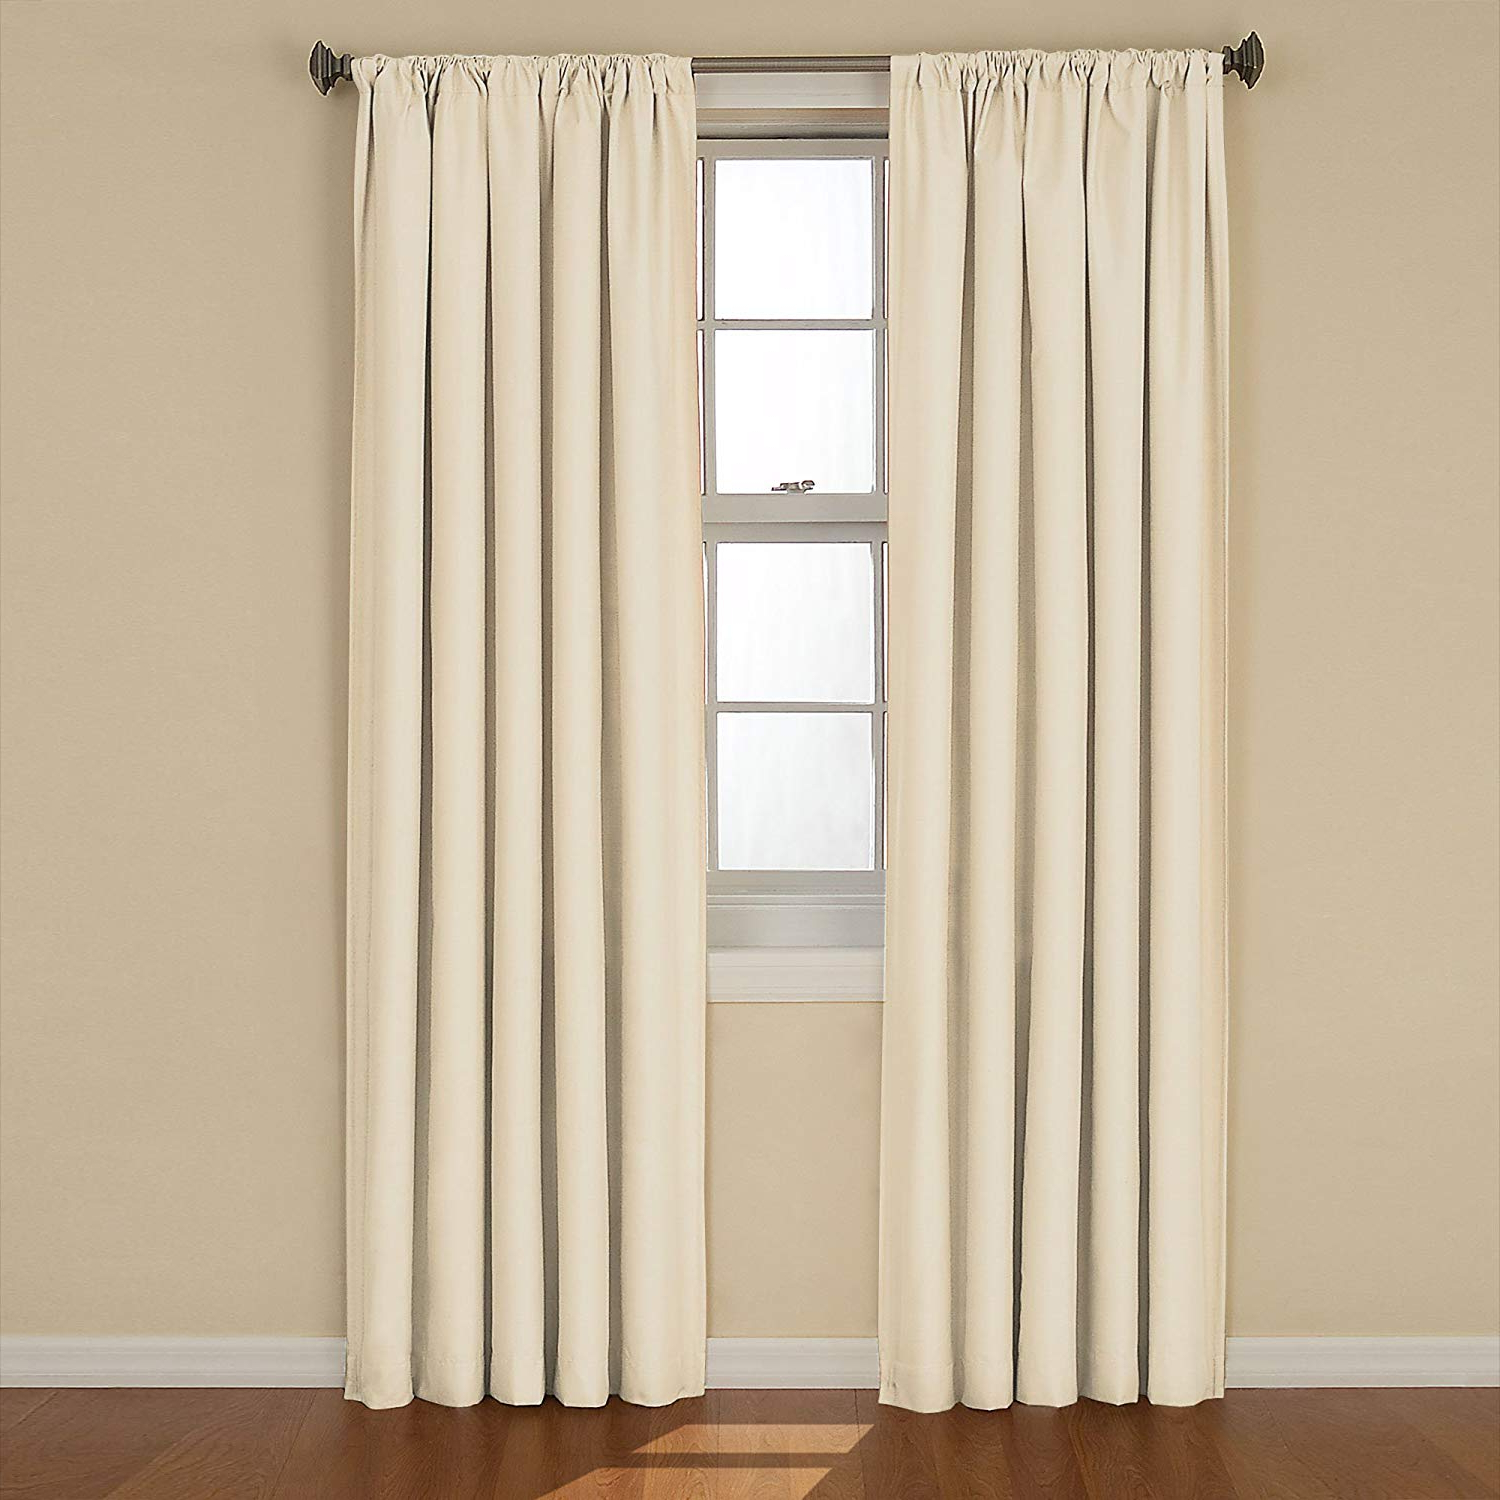 "Most Recently Released Eclipse Blackout Curtains For Bedroom – Kendall Insulated Darkening Single Panel Rod Pocket Window Treatment Living Room, 42"" X 84"", Ivory For Eclipse Kendall Blackout Window Curtain Panels (Gallery 16 of 20)"